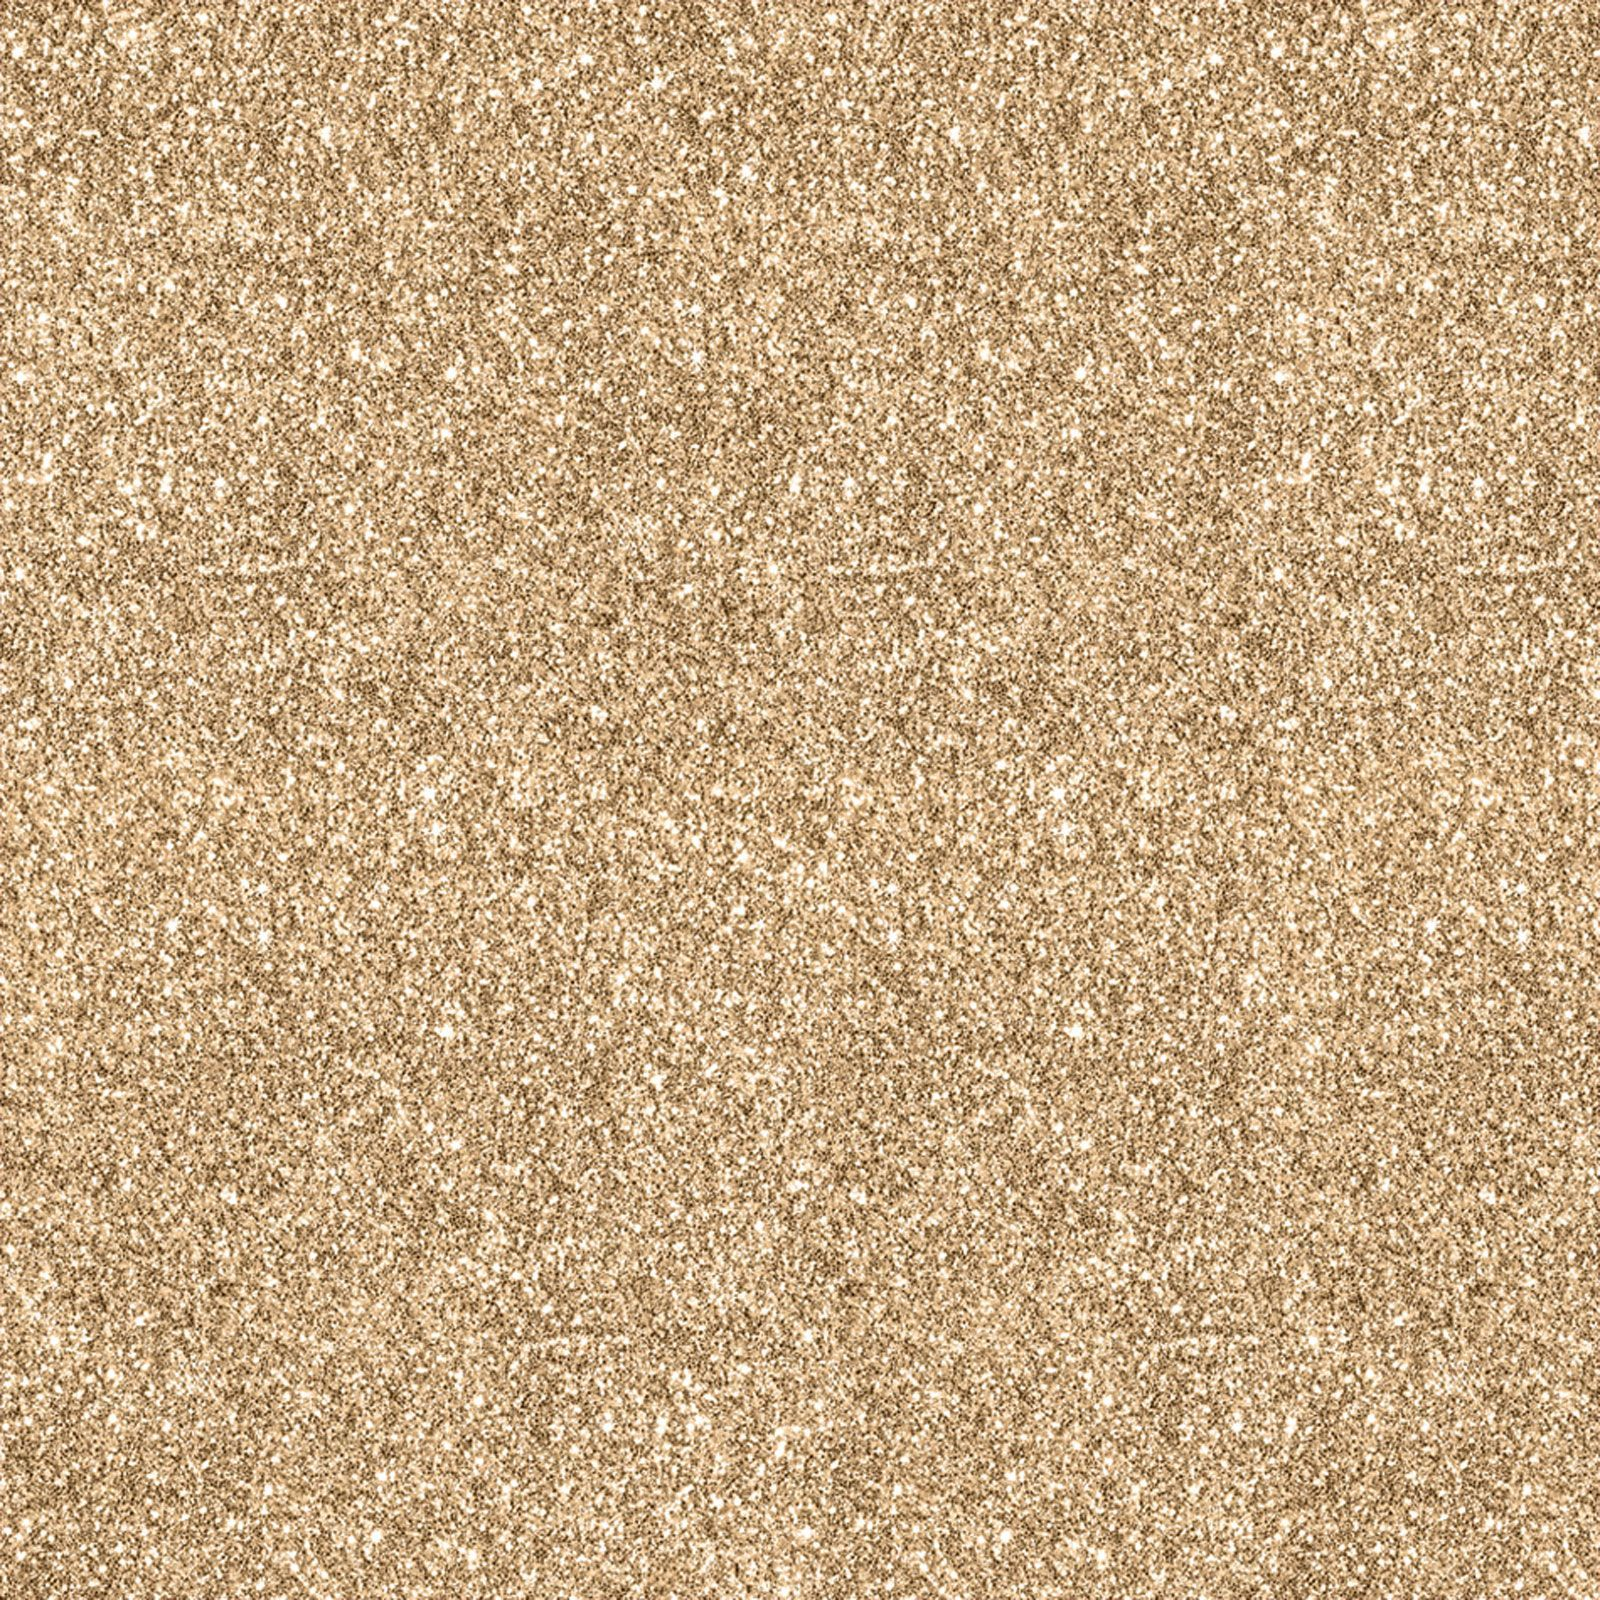 1600x1600 Details about MURIVA SPARKLE GLITTER WALLPAPER COLOURS AVAILABLE: PINK GOLD  BLACK SILVER TEAL